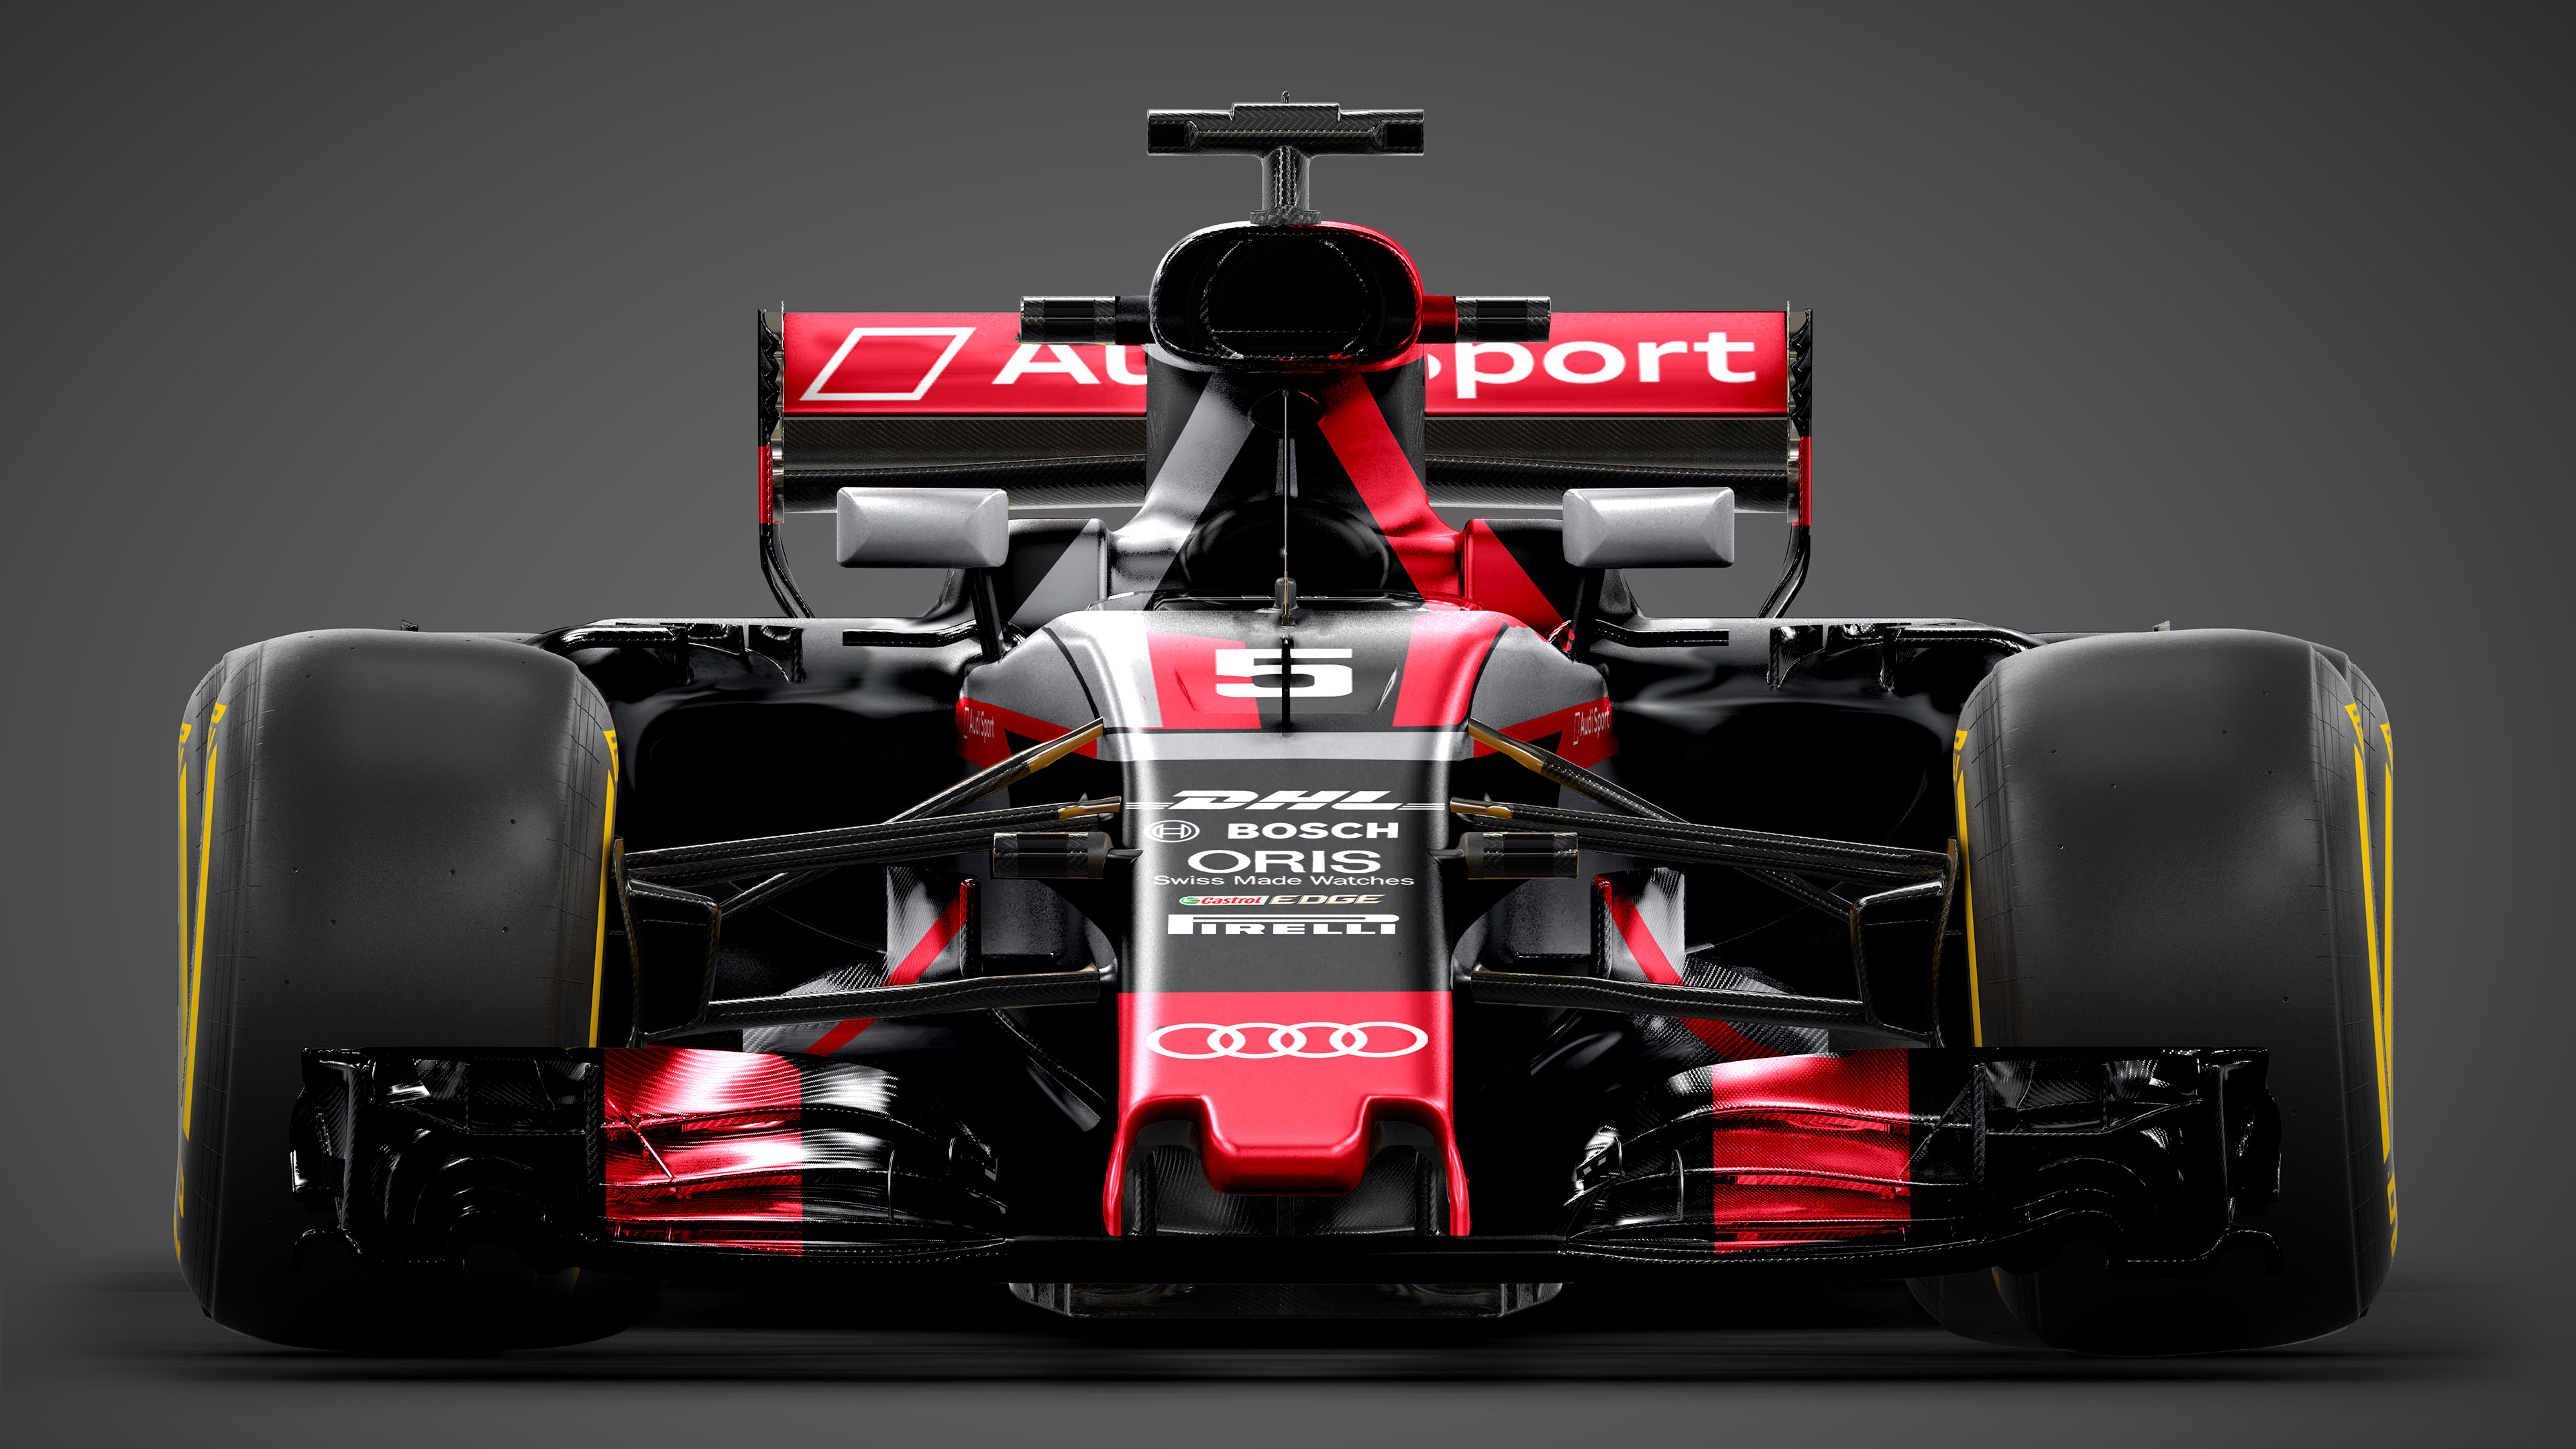 Ferrari f1 2018 hd wallpaper 11